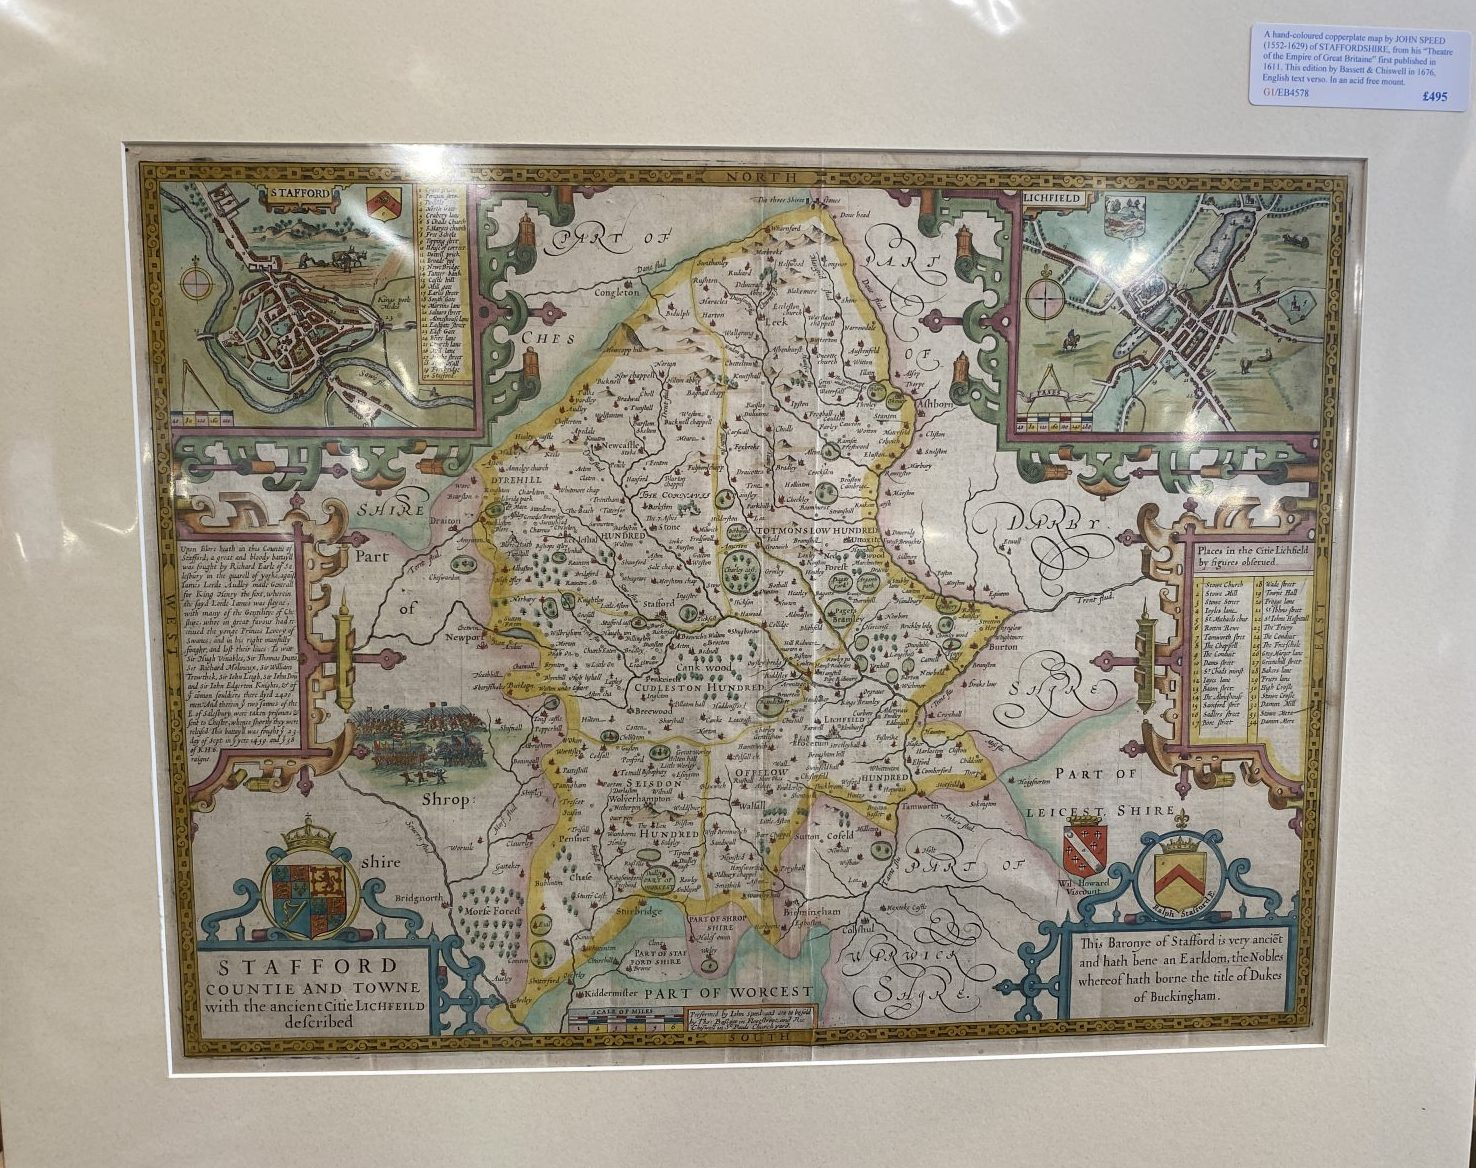 G1 - A Hand-coloured copperplate map of STAFFORDSHIRE by John Speed (1552-1629), from his Theatre of the Empire of Great Britaine. This edition published by Bassett & Chiswell in 1676, English text verso. New acid free mount ready for framing.   £495